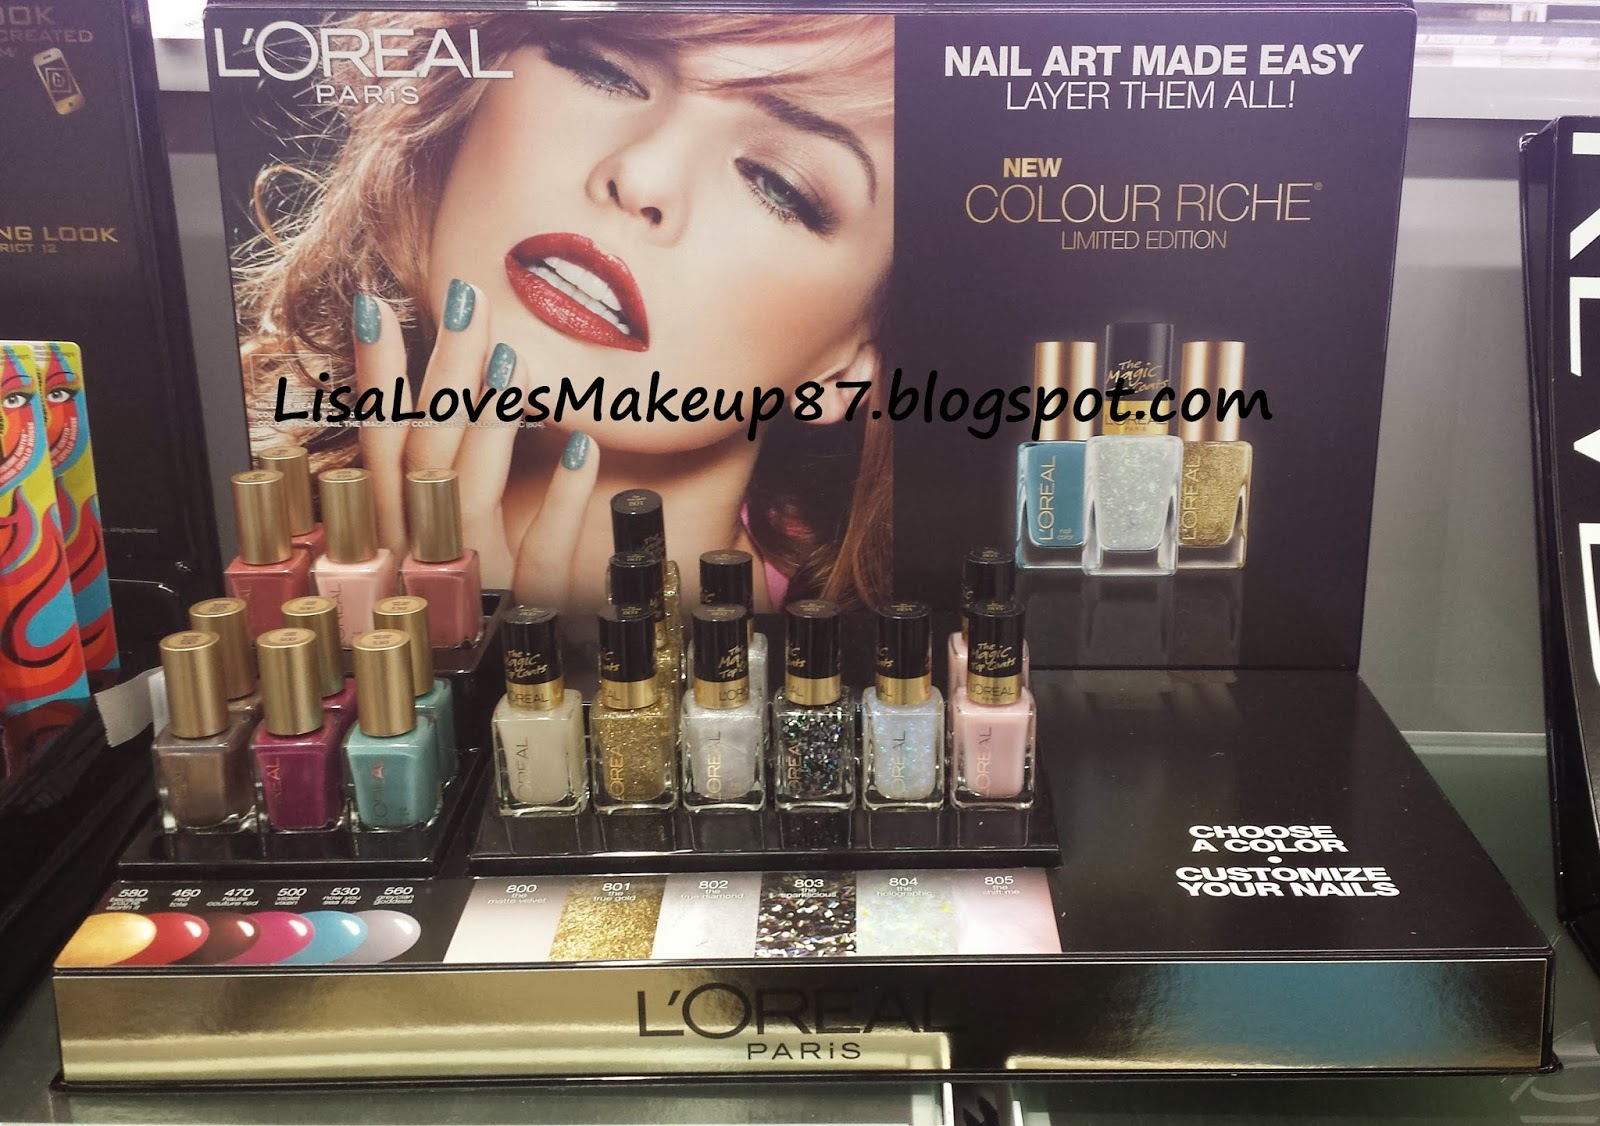 LisaLovesMakeup87: Spotted: LOreal Limited Edition The